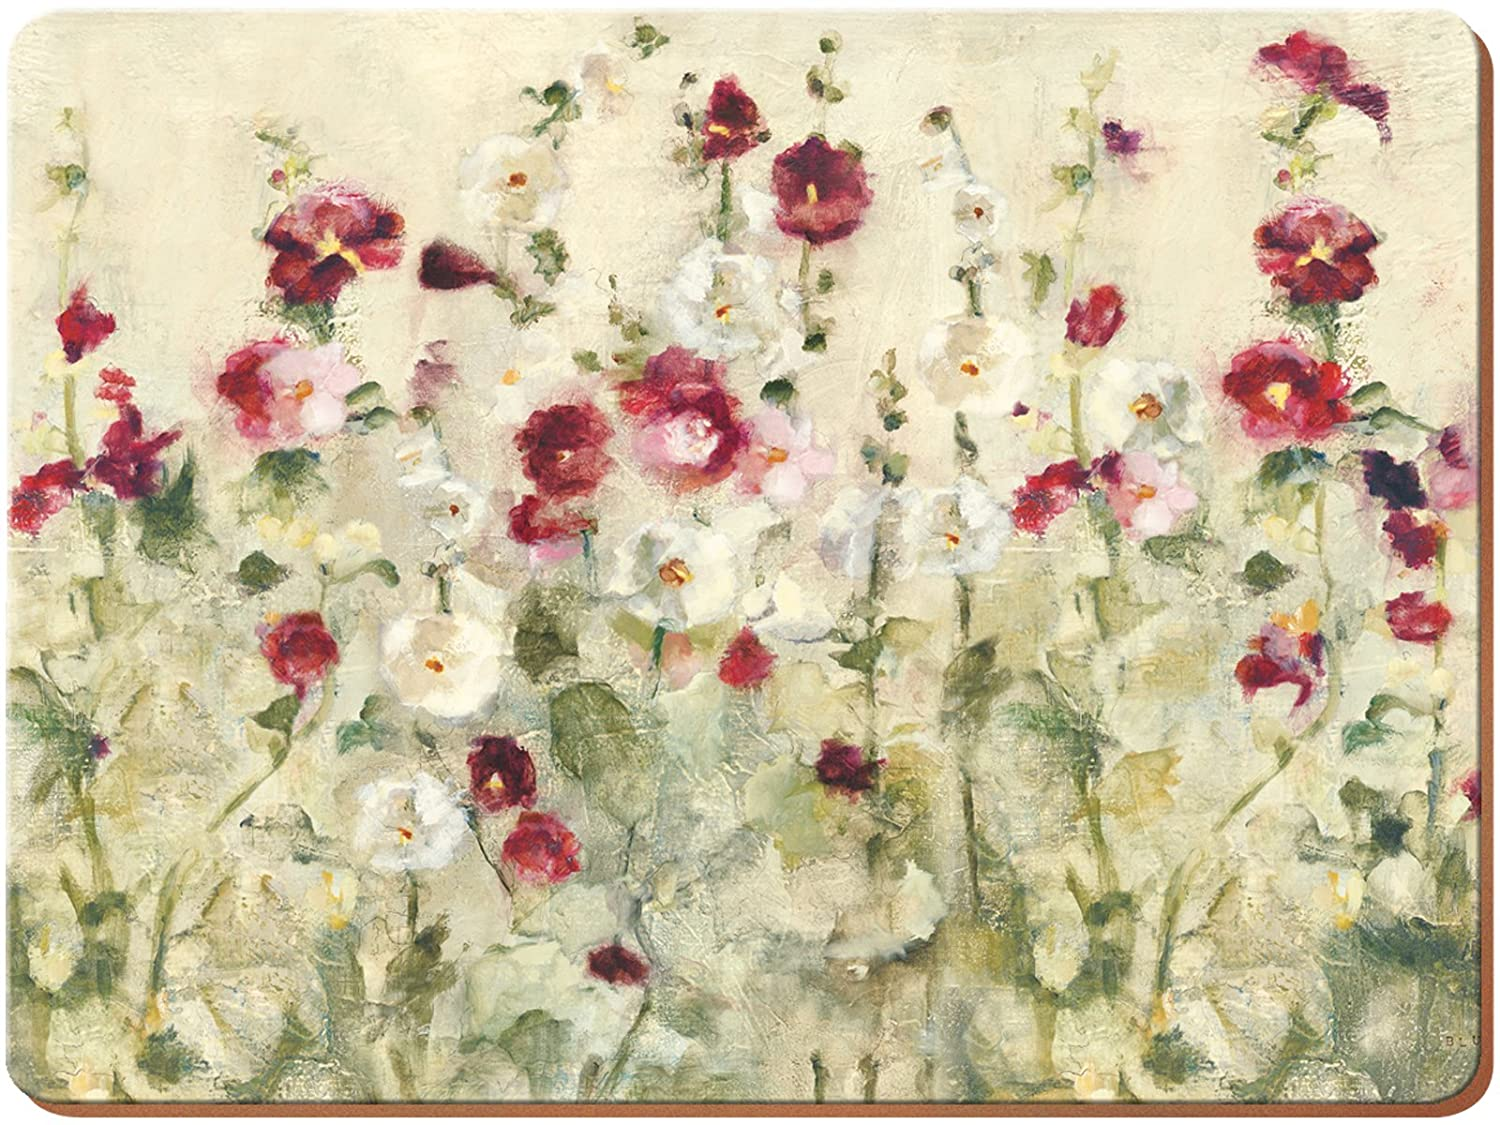 "Creative Tops Wild Field Poppies Premium 6-Piece Set of Cork-Backed Placemats by, 30 x 22.8 cm (11¾"" x 9"")"